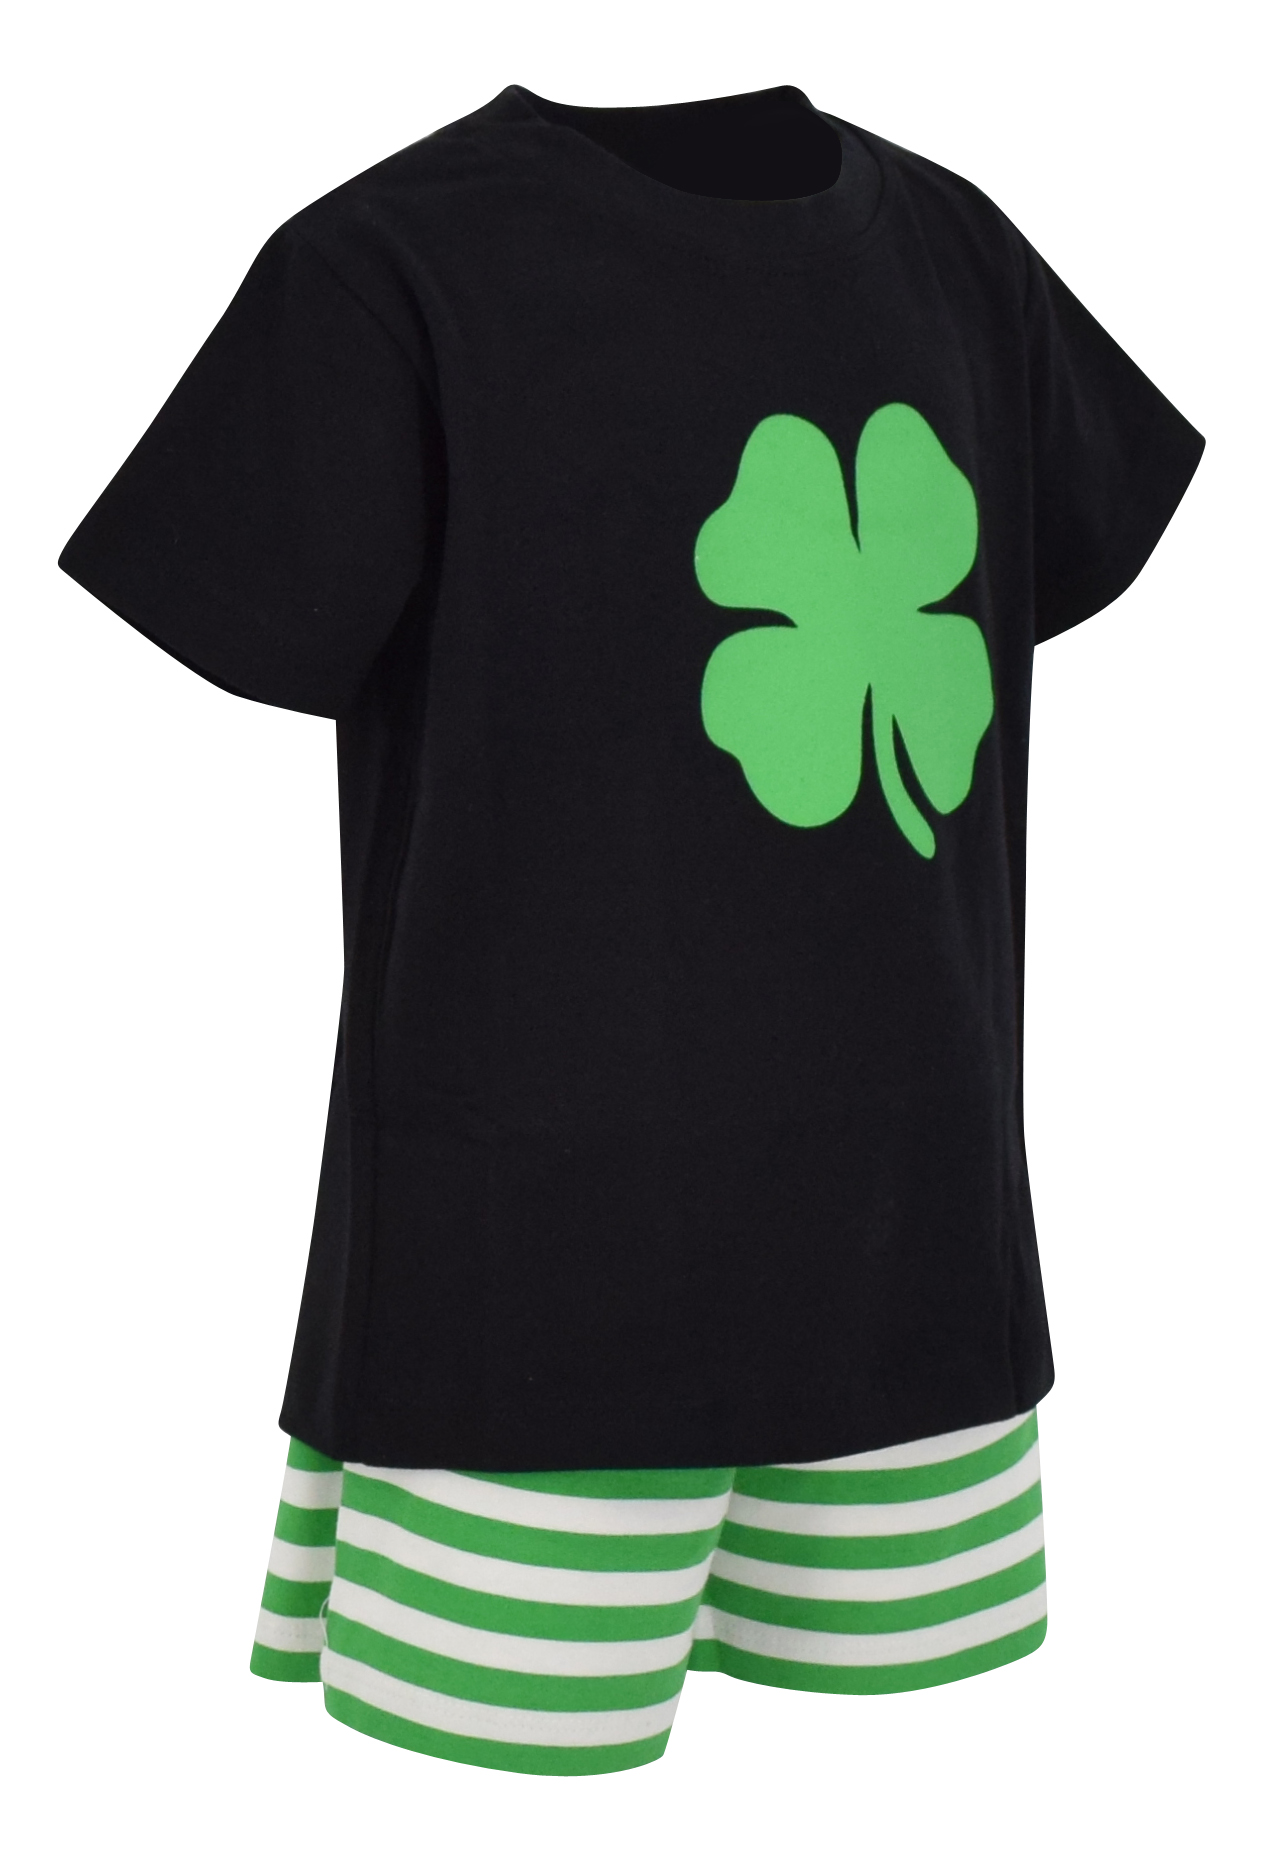 Boys-2-Piece-ST-Patricks-Day-Clover-Outfit-2t-3t-4t-5-6-7-8-Toddler-Kids-Clothes thumbnail 34